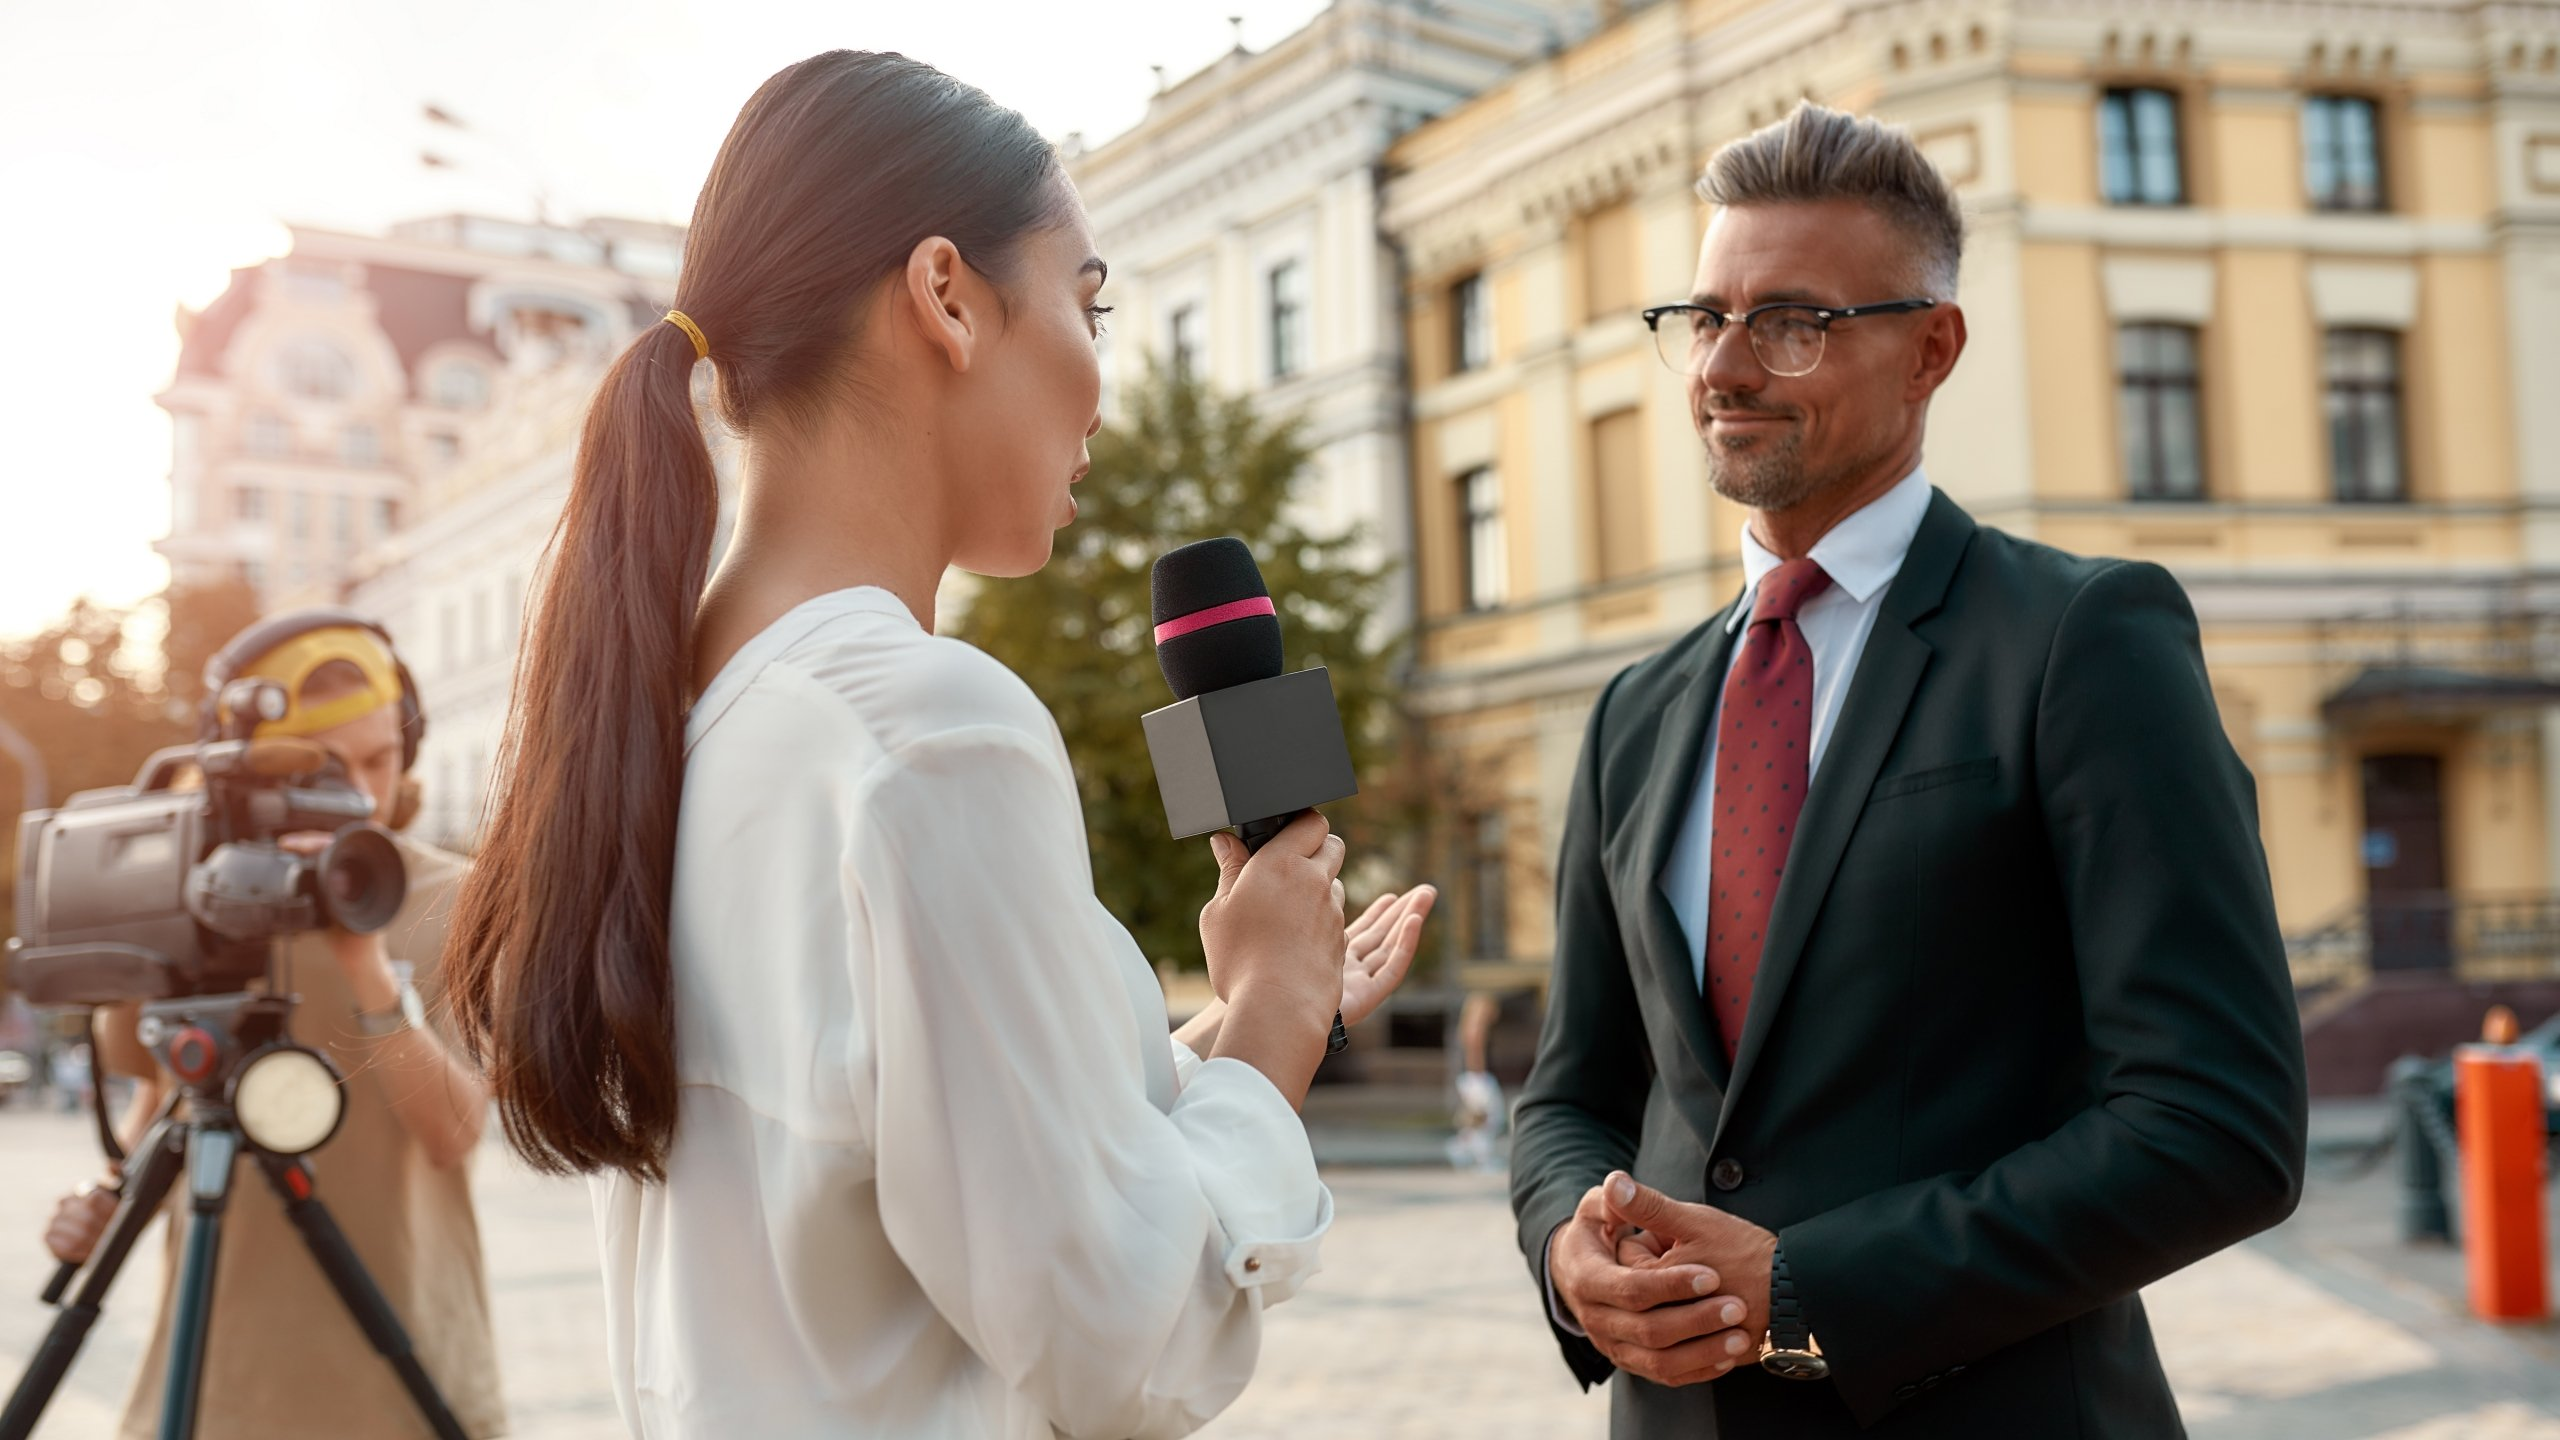 Lady interviewing business man